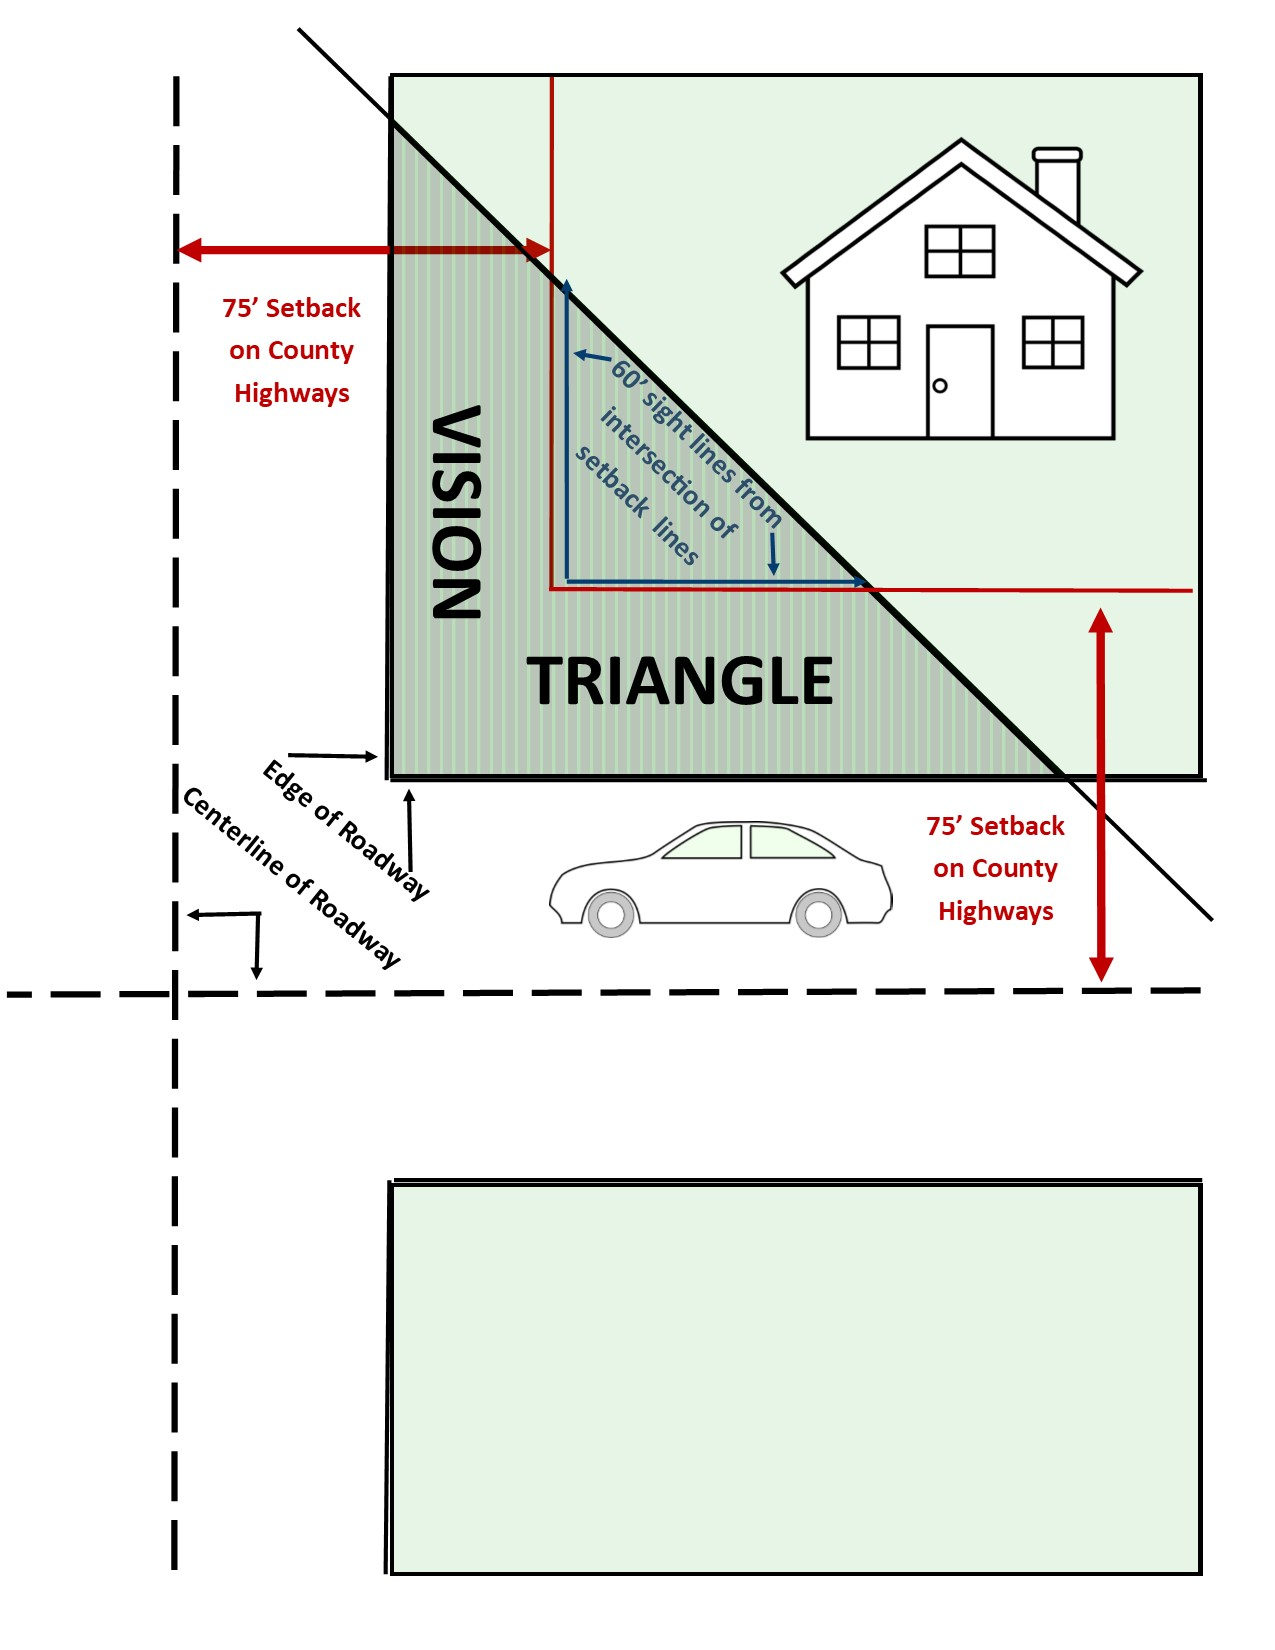 Diagram to show a vision triangle area